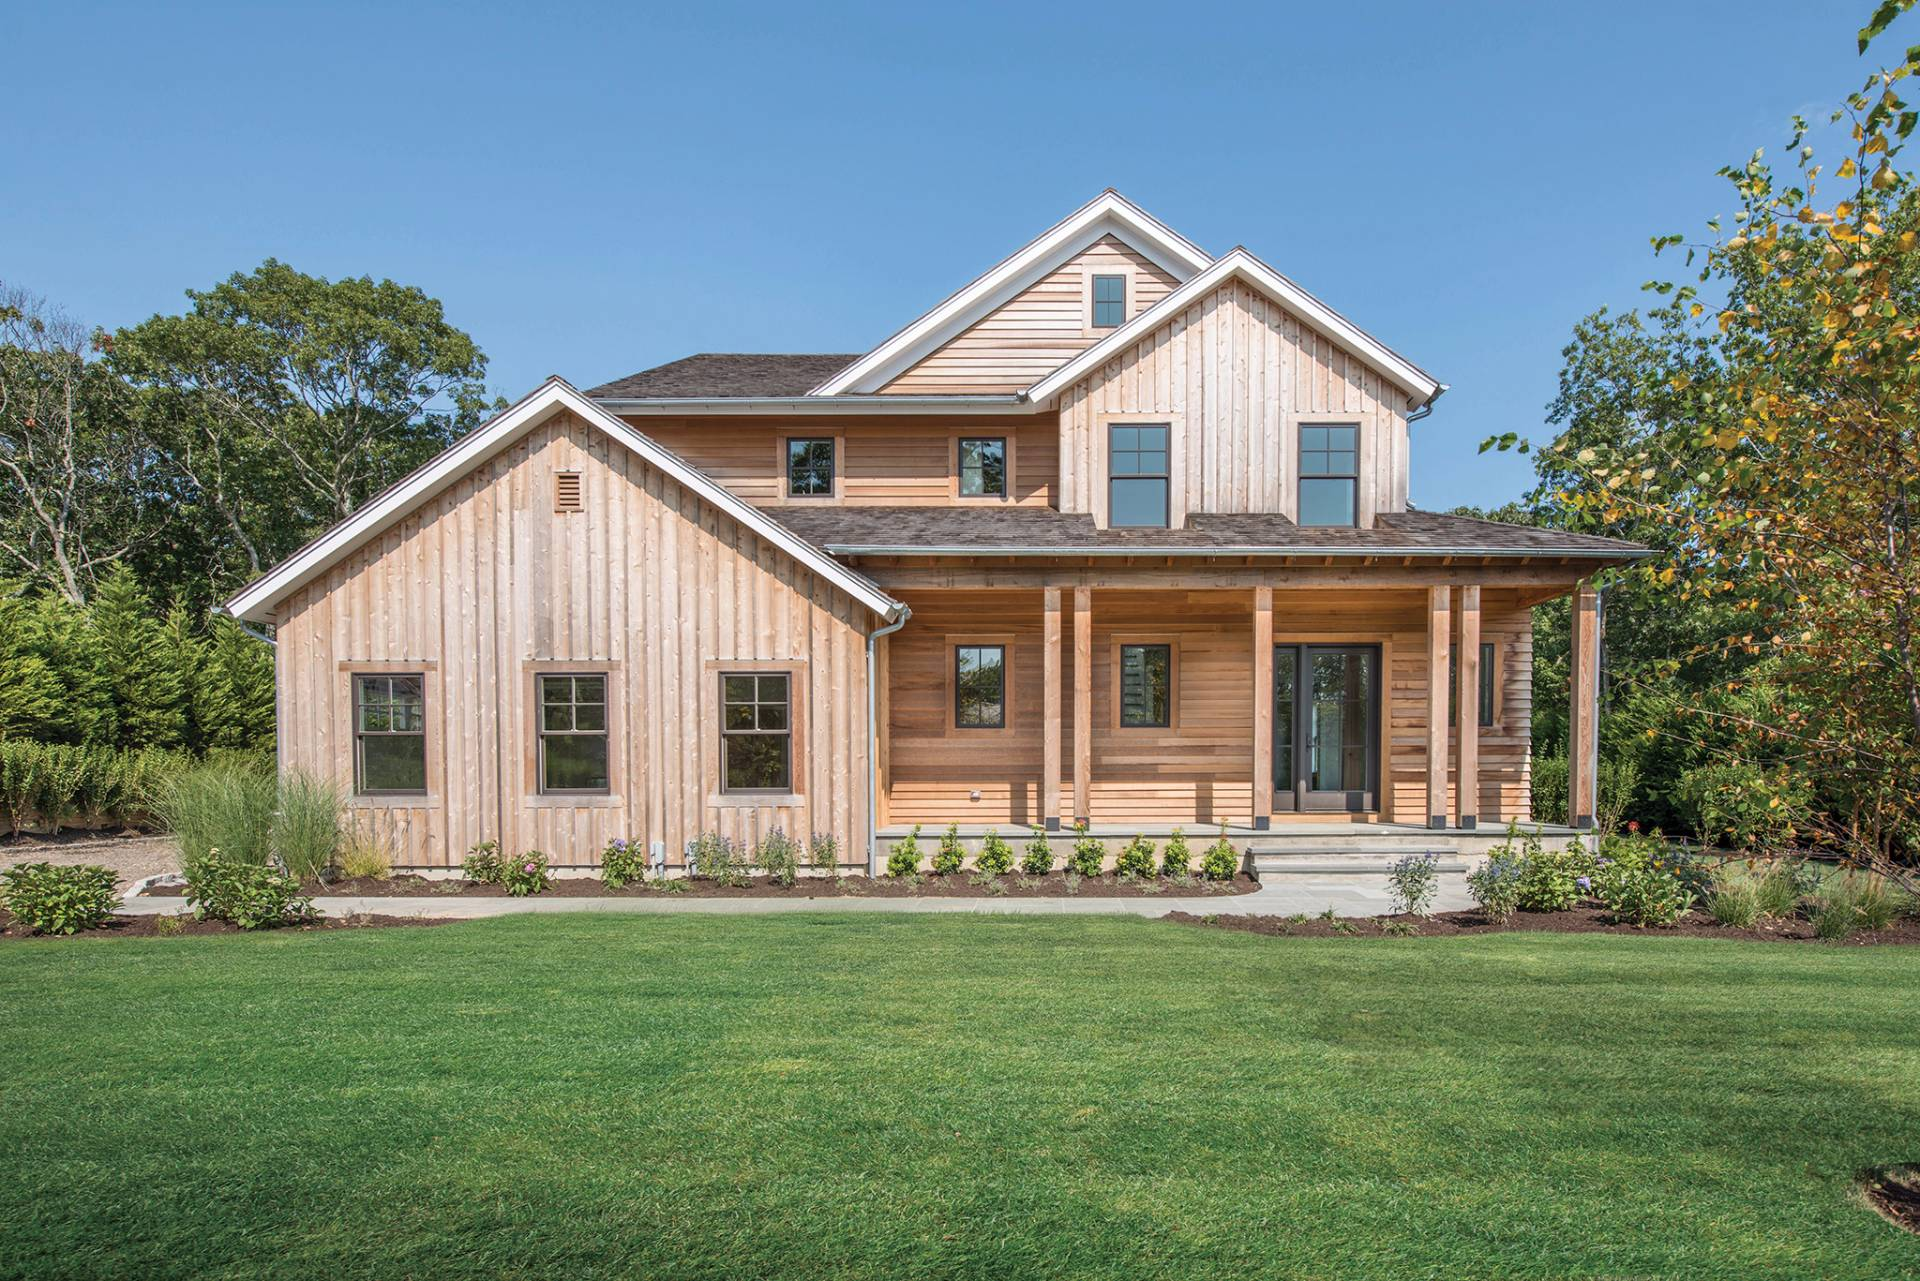 Single Family Home for Sale at The Addison At Bridgehampton's Barn & Vine - A Barn For Today 79 Birchwood Lane, (Lot 22, Addison), Bridgehampton, New York